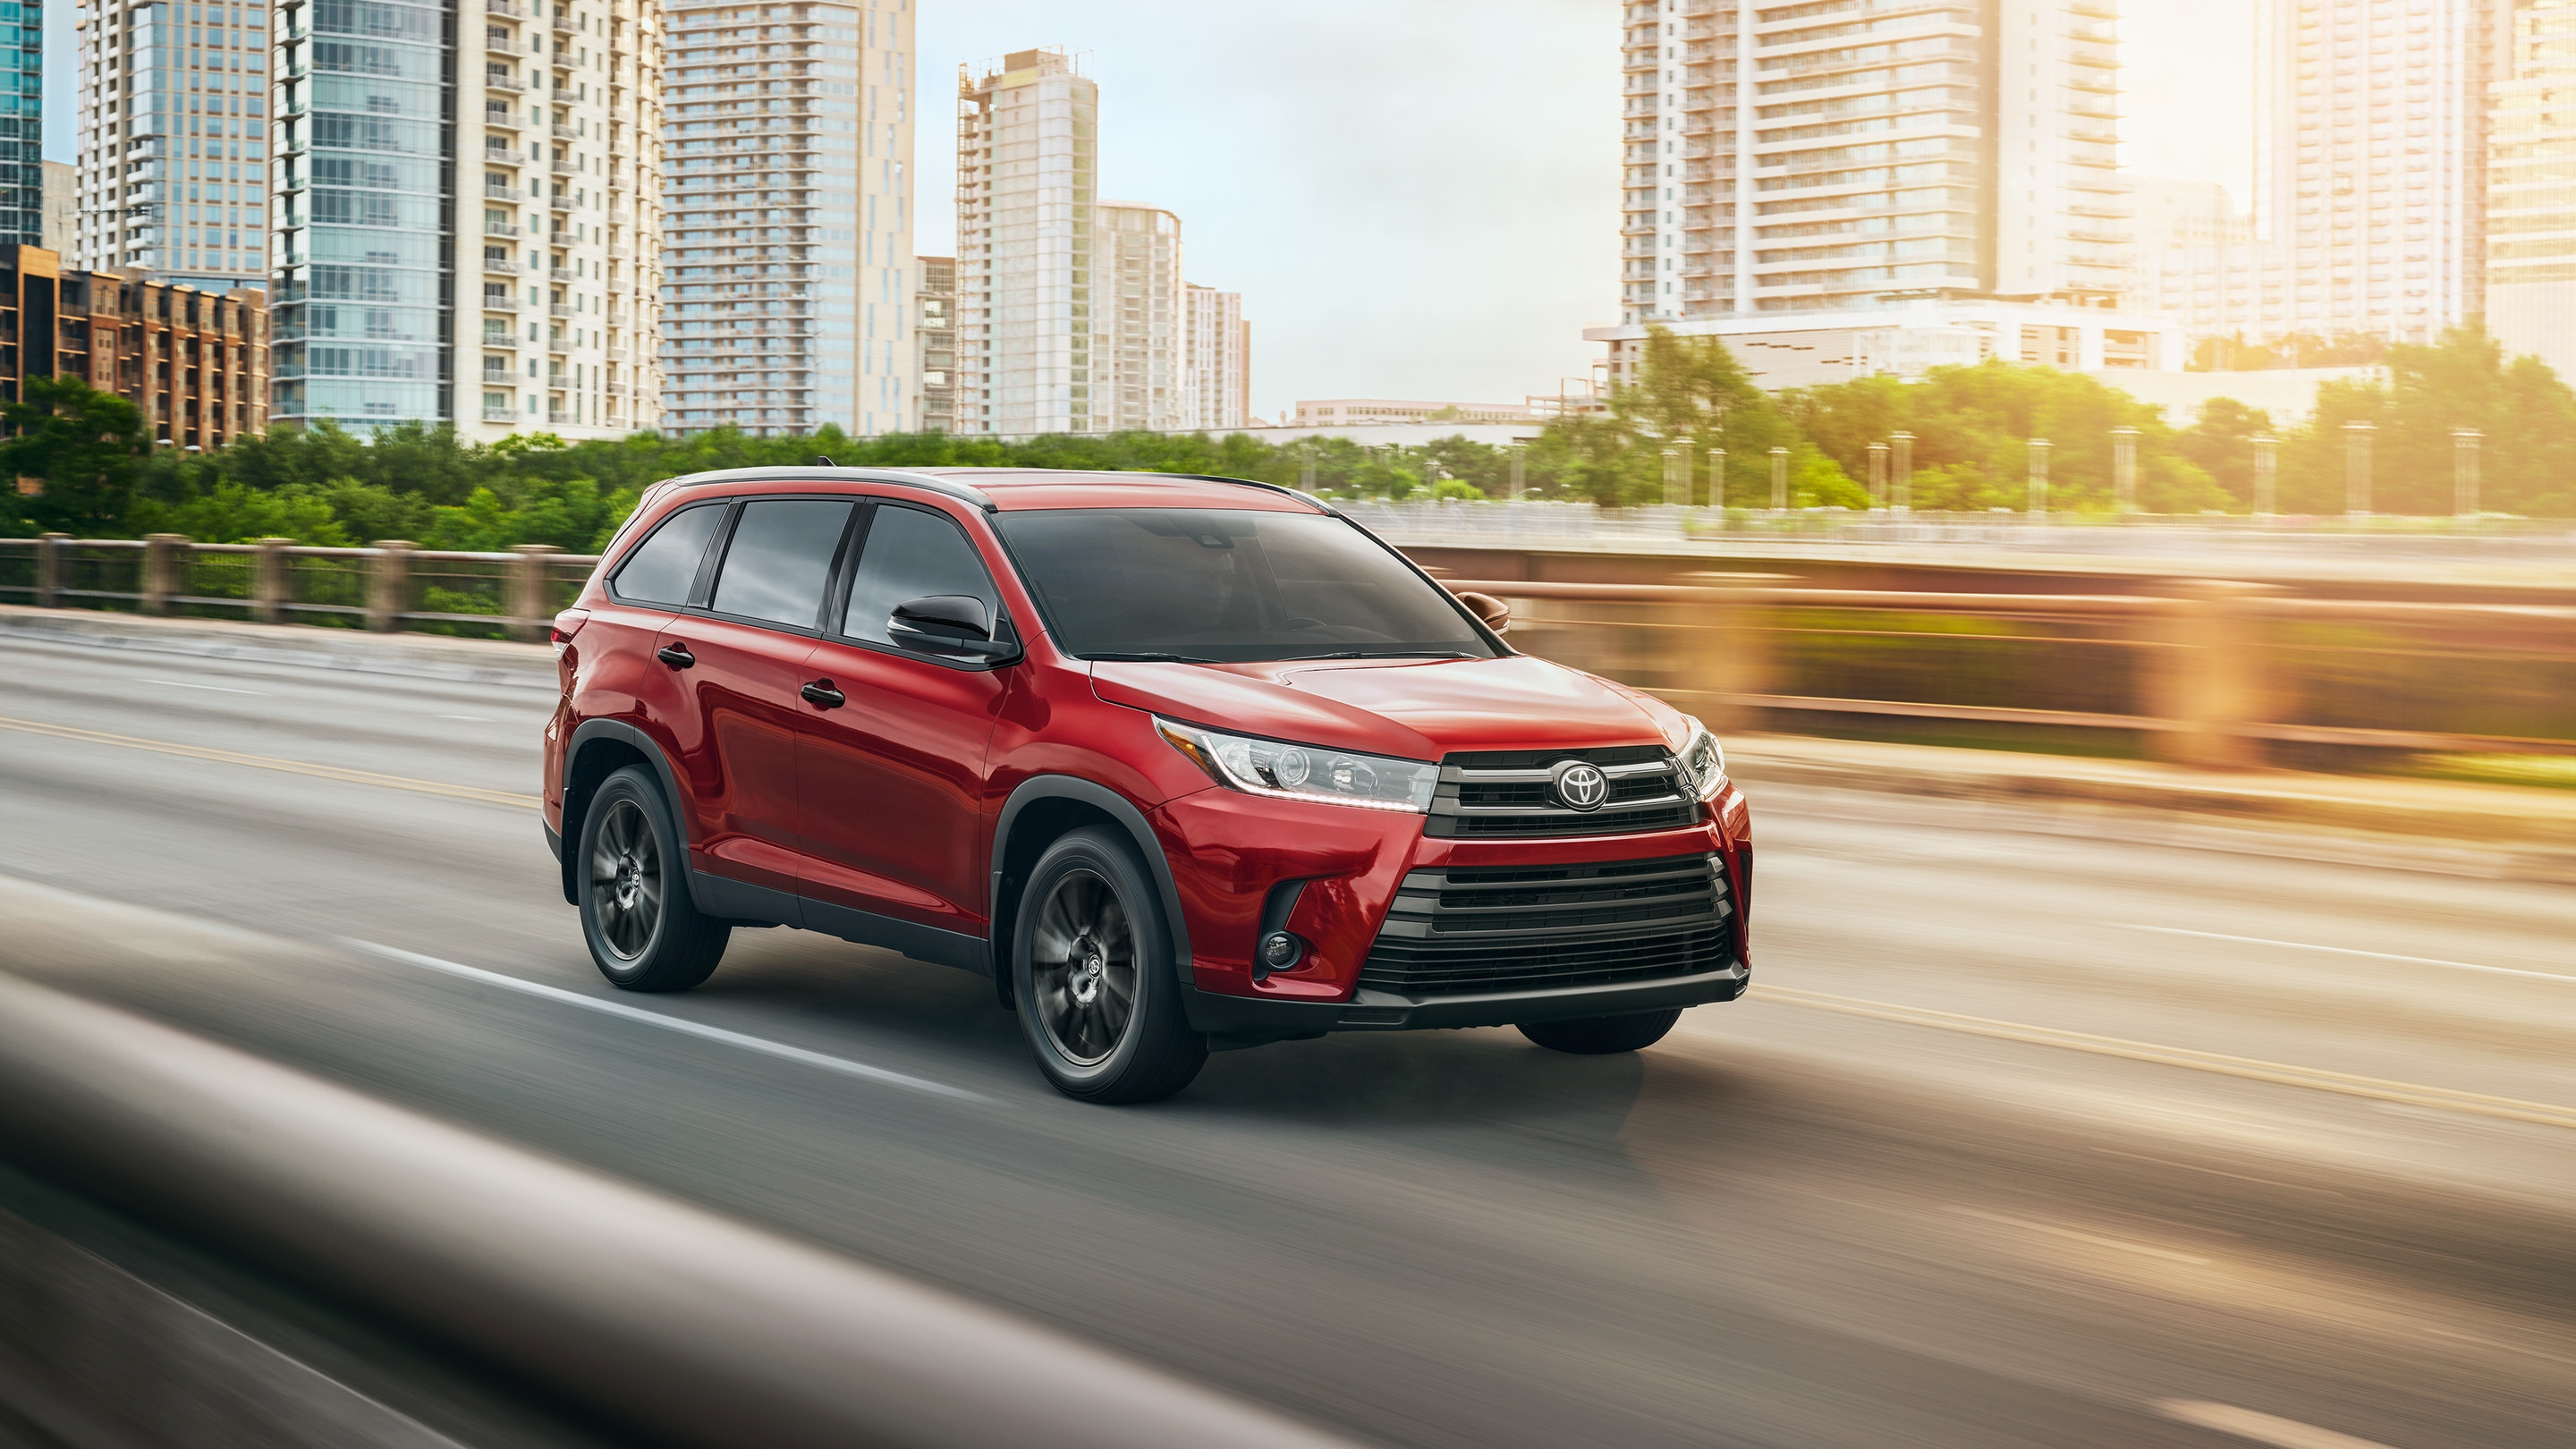 2019 Toyota Highlander Key Features near Queens, NY